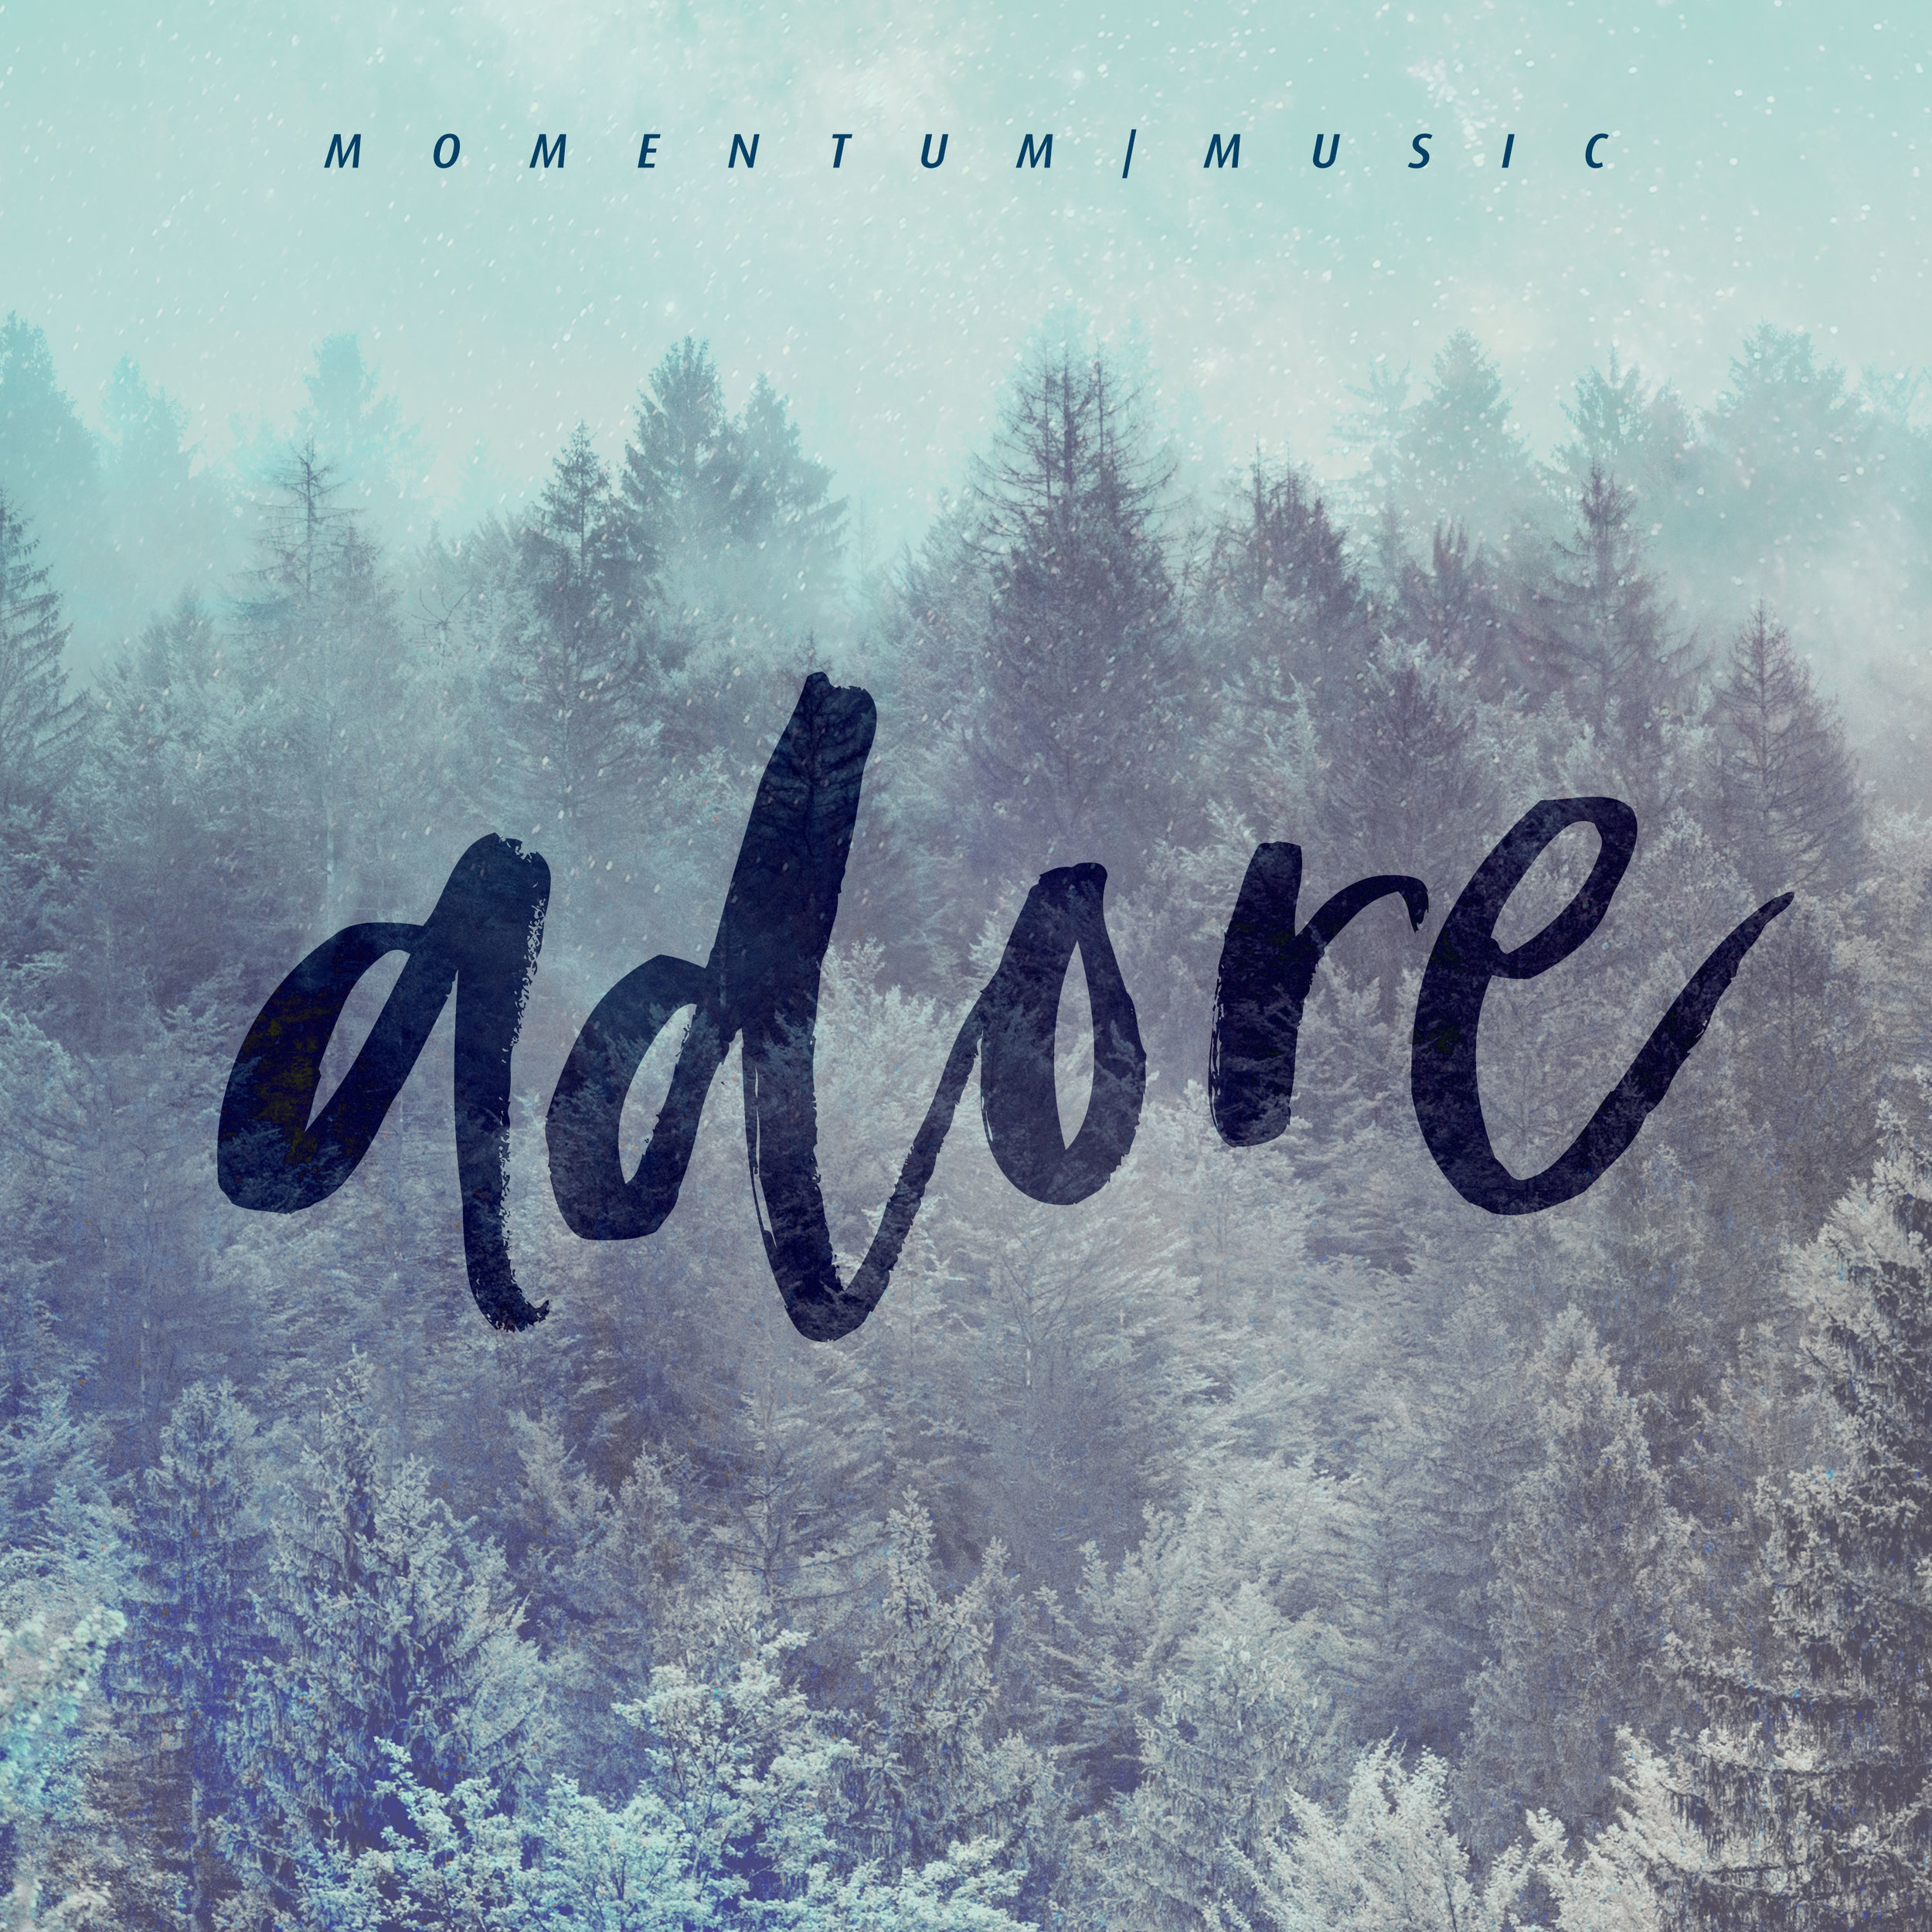 Adore (Single) - Download everything you need to lead Adore, our Christmas single, including chord charts, lyrics, and tracks. Contact us if you have questions or need anything else!